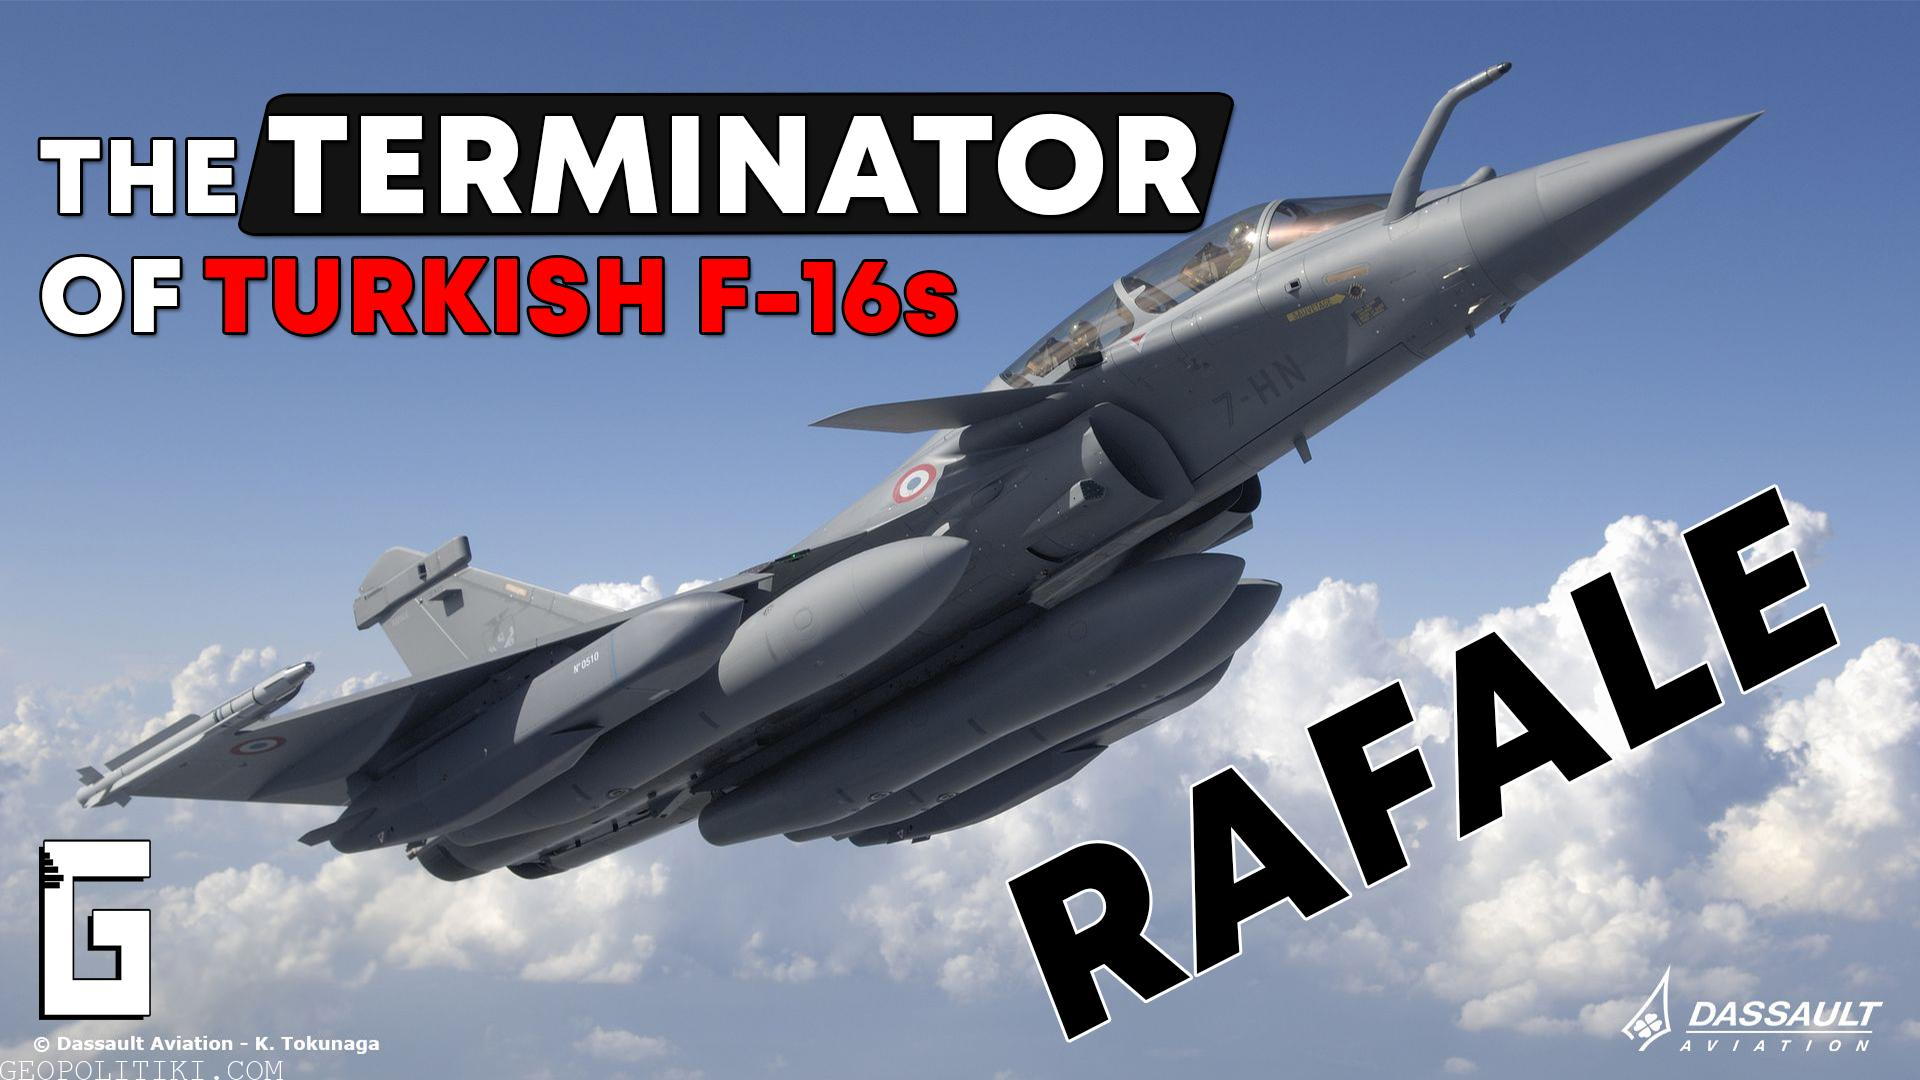 GREEK RAFALE ARMED WITH METEOR: The Terminators of the Turkish F16s